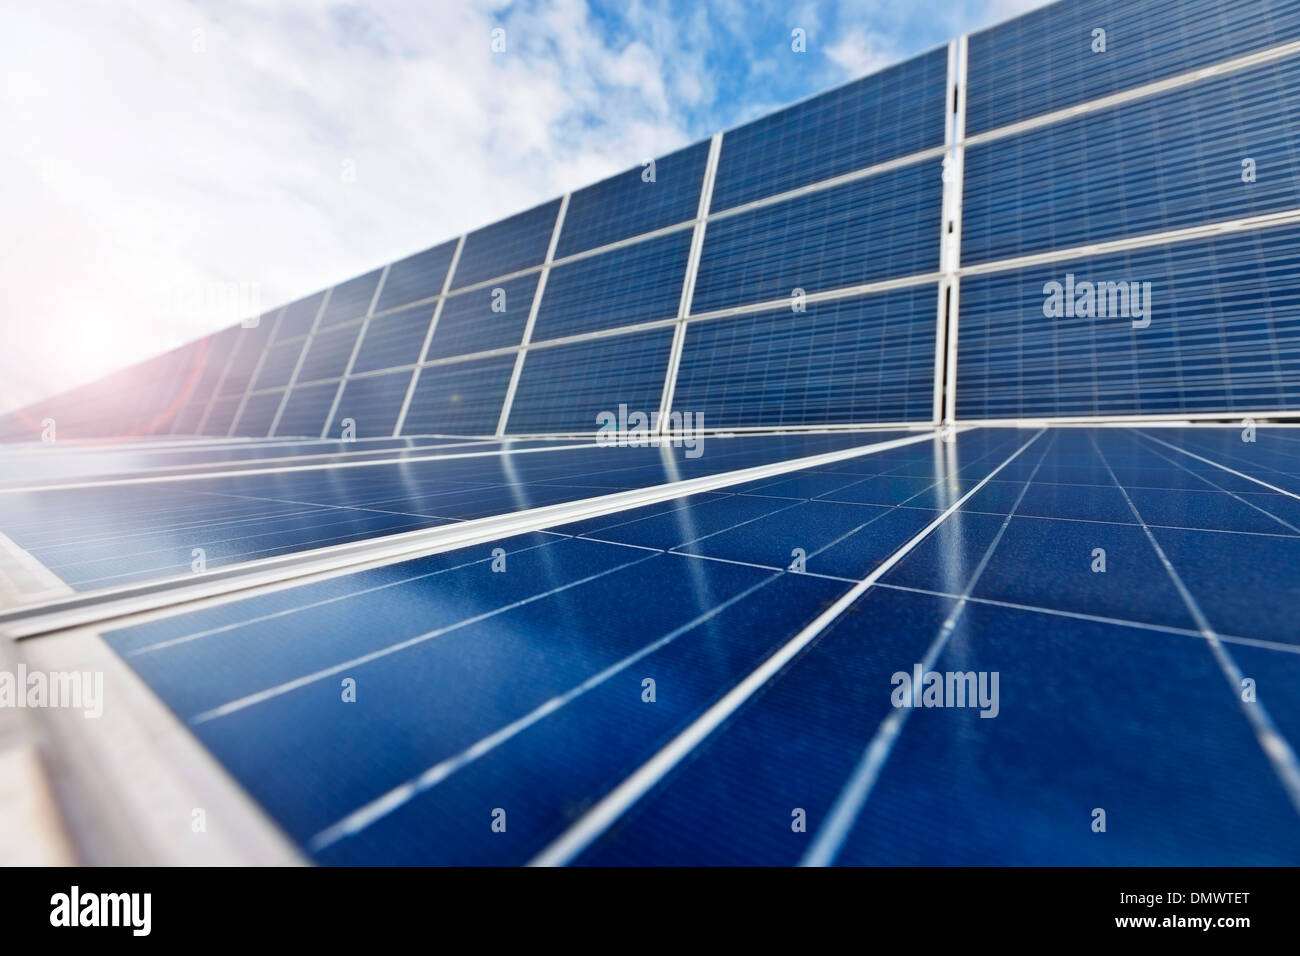 Photovoltaic Cells or Solar Panels in sunlight - Stock Image